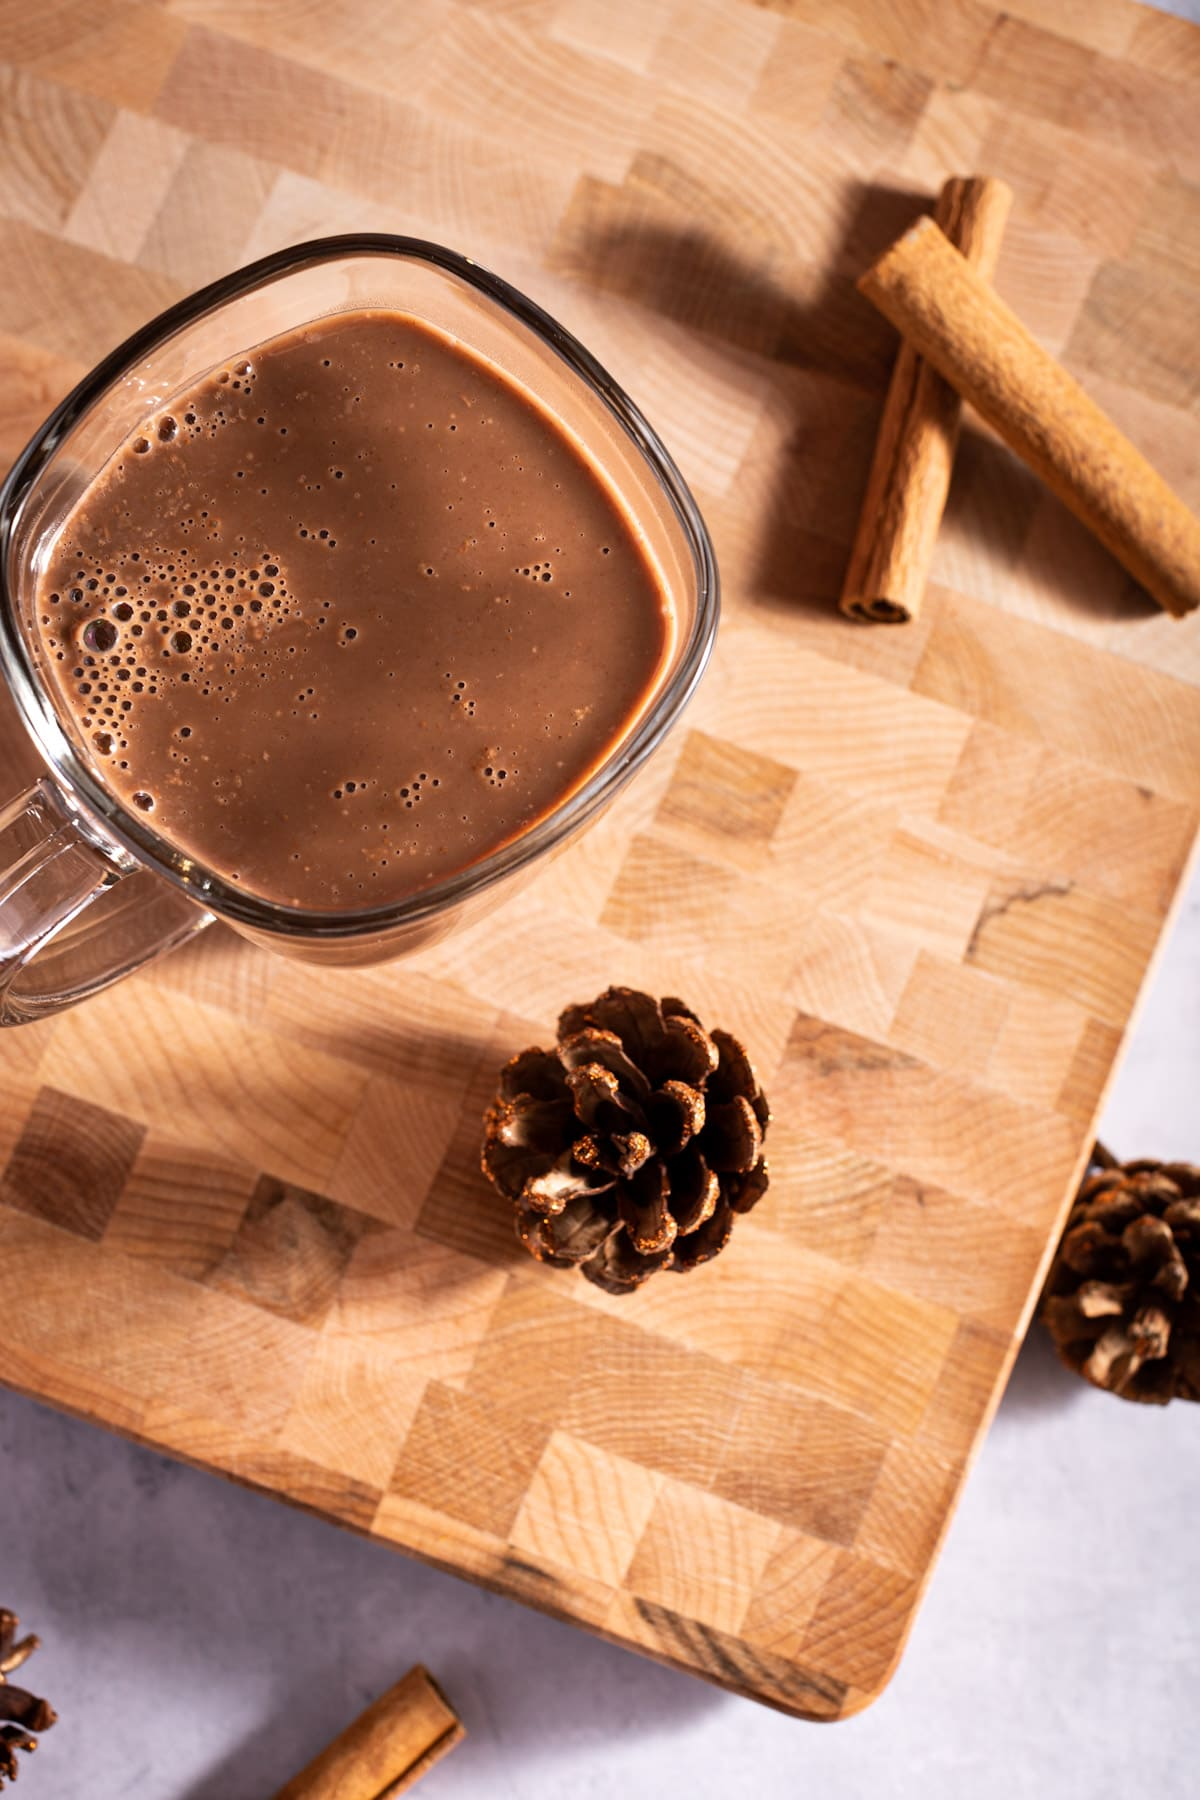 Overhead photo of hot chocolate, cinnamon sticks and a pinecone on a wooden board.